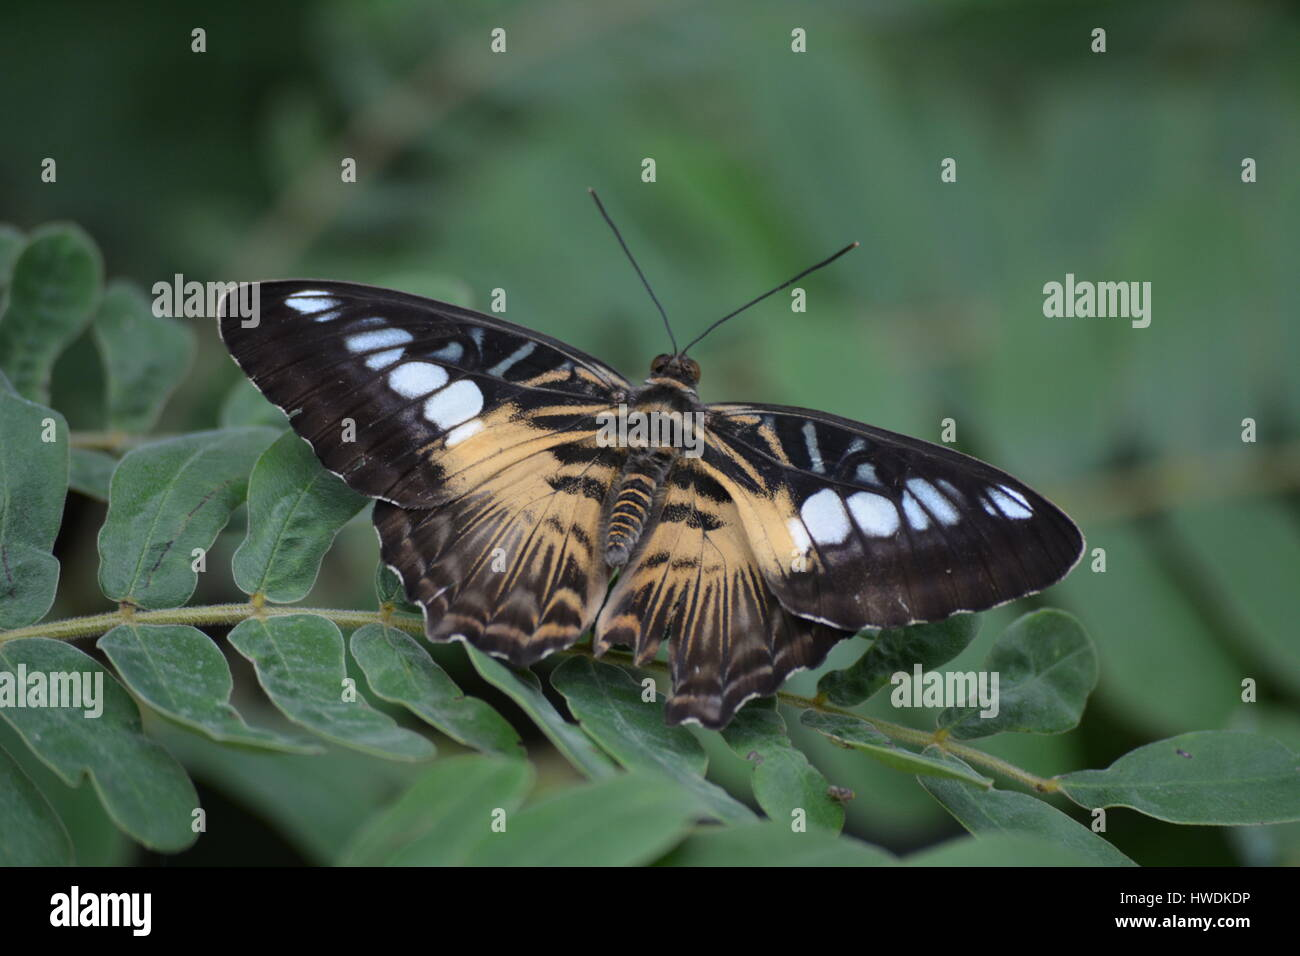 Butterlfy Spreading its Wings - Stock Image